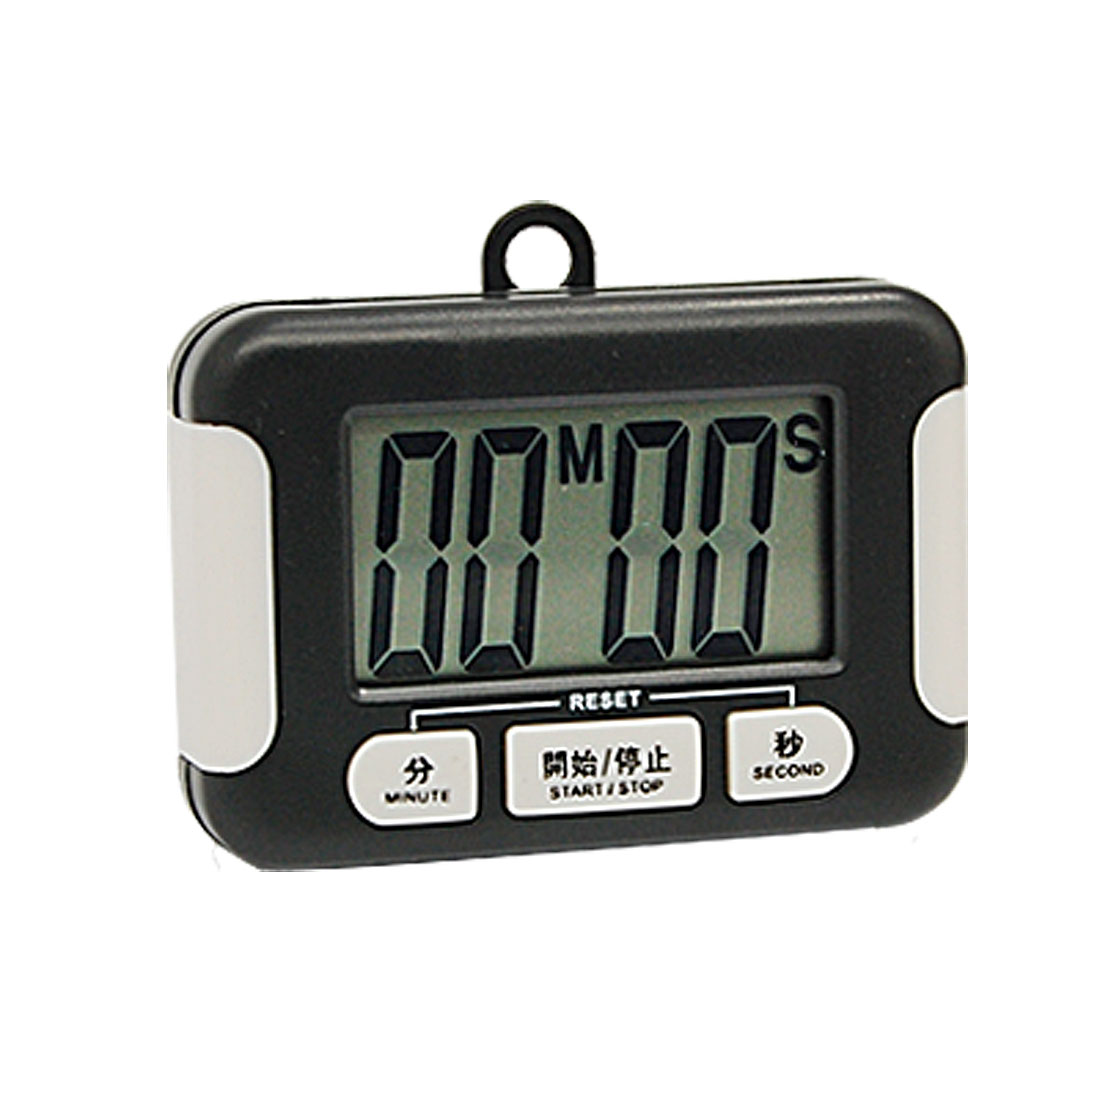 Easy Set LCD Digital Count Up Down Kitchen Alarm Timer